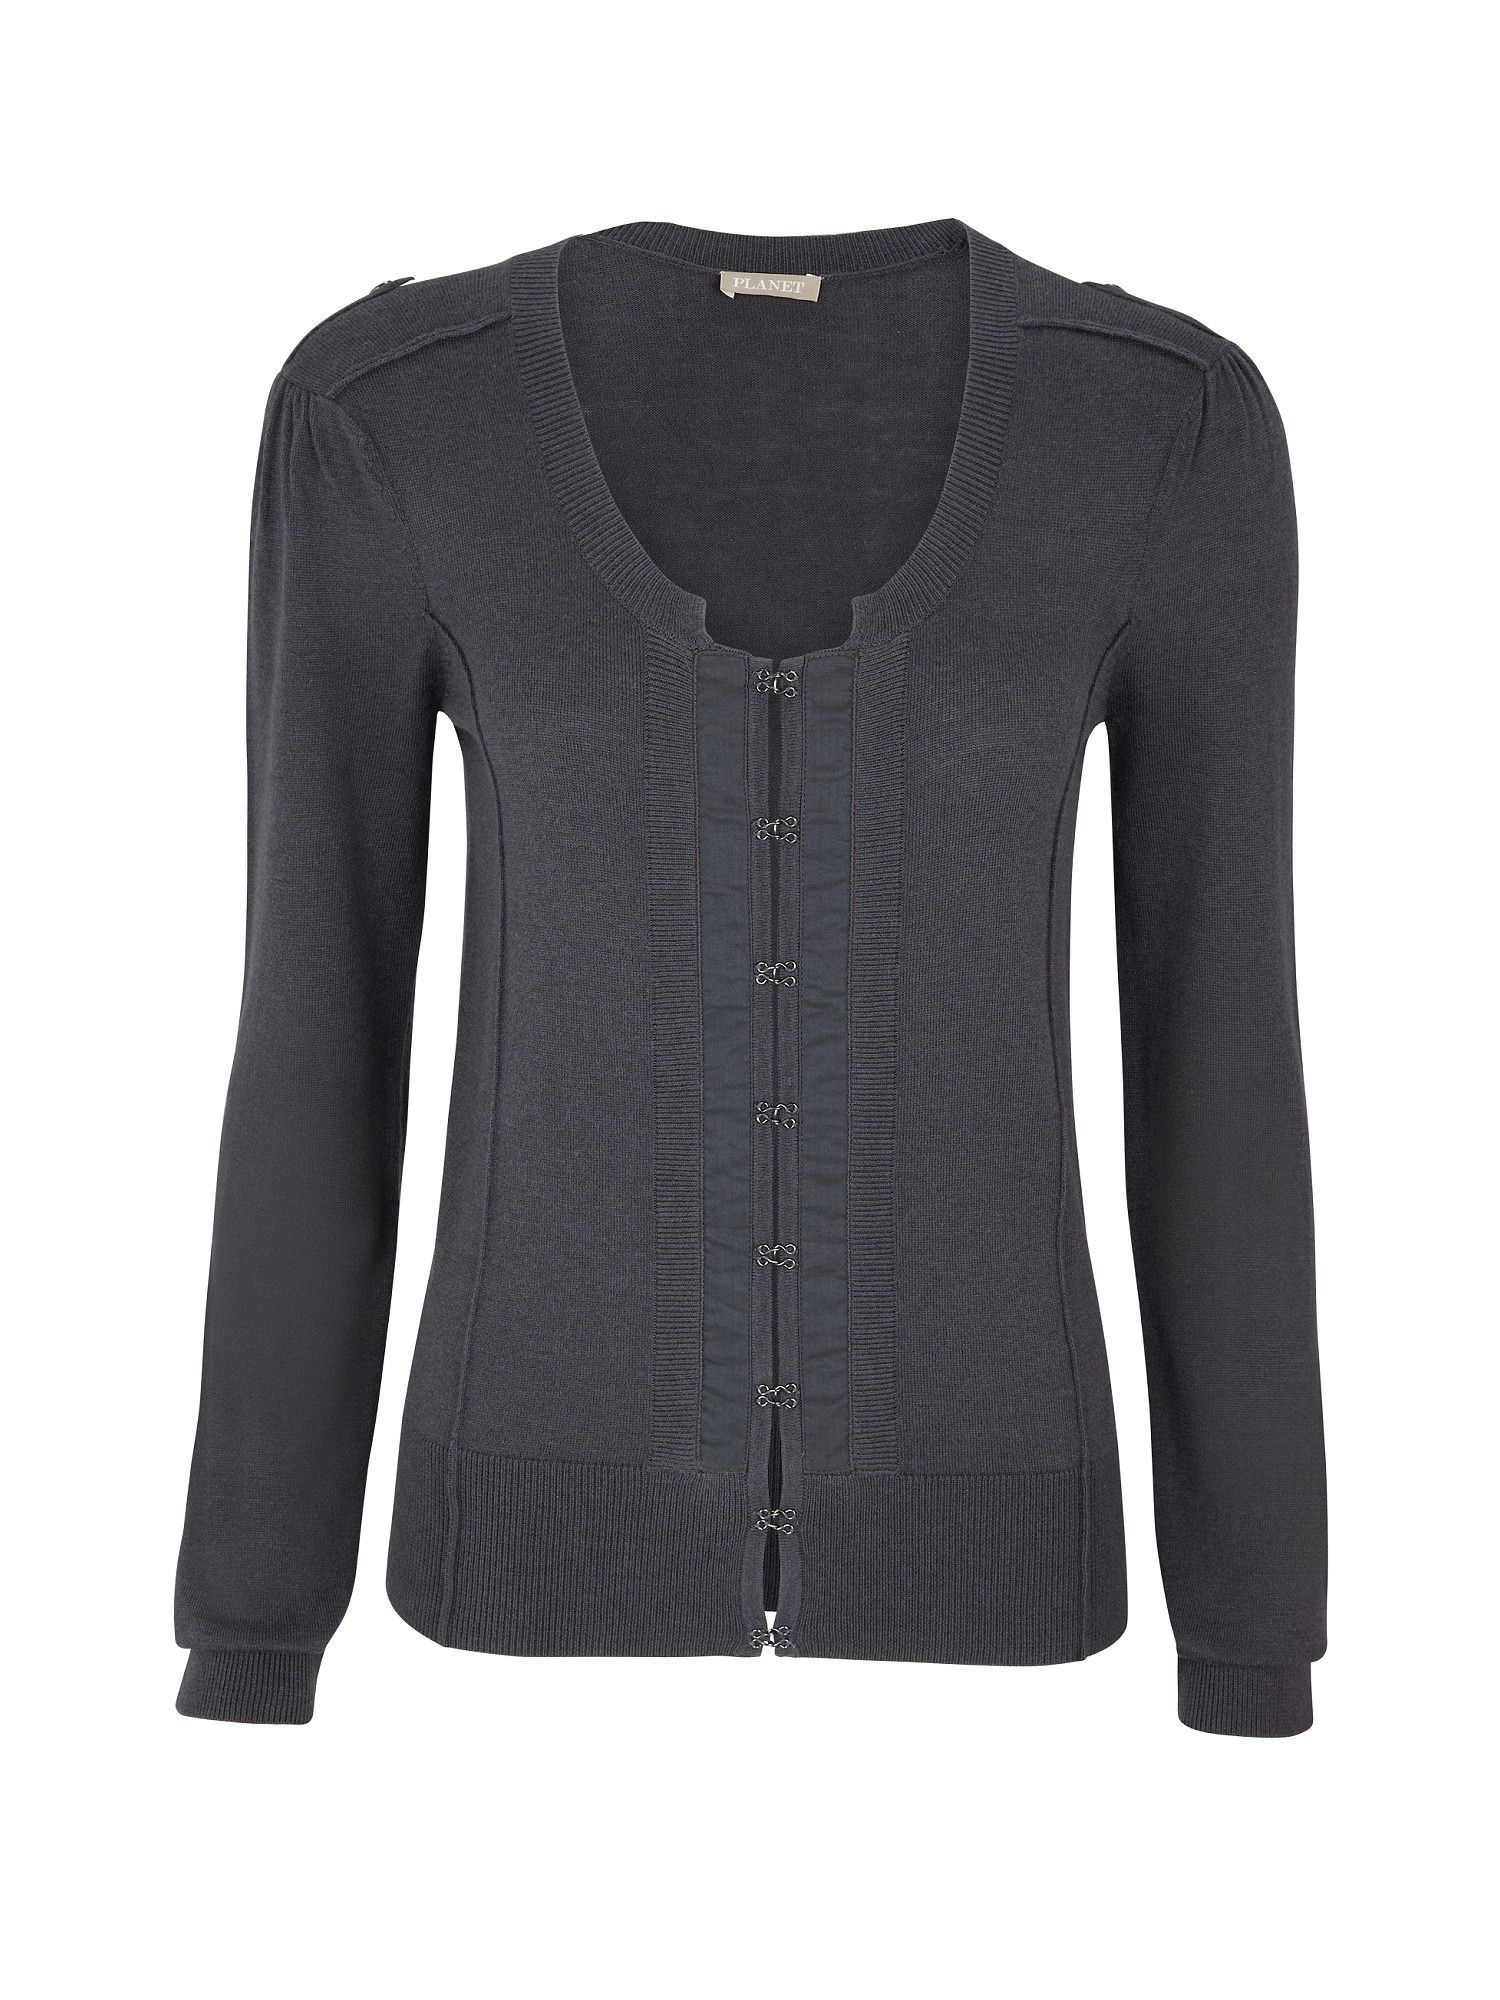 Women's Silver Military Style Cardigan, Charcoal - neckline: scoop neck; pattern: plain; style: fine knit; hip detail: fitted at hip; bust detail: buttons at bust (in middle at breastbone)/zip detail at bust; predominant colour: charcoal; occasions: casual, work; length: standard; fibres: cotton - 100%; material texture: jersey; fit: slim fit; waist detail: fitted waist; sleeve length: long sleeve; sleeve style: standard; pattern type: knitted - other; pattern size: standard; texture group: jersey - stretchy/drapey